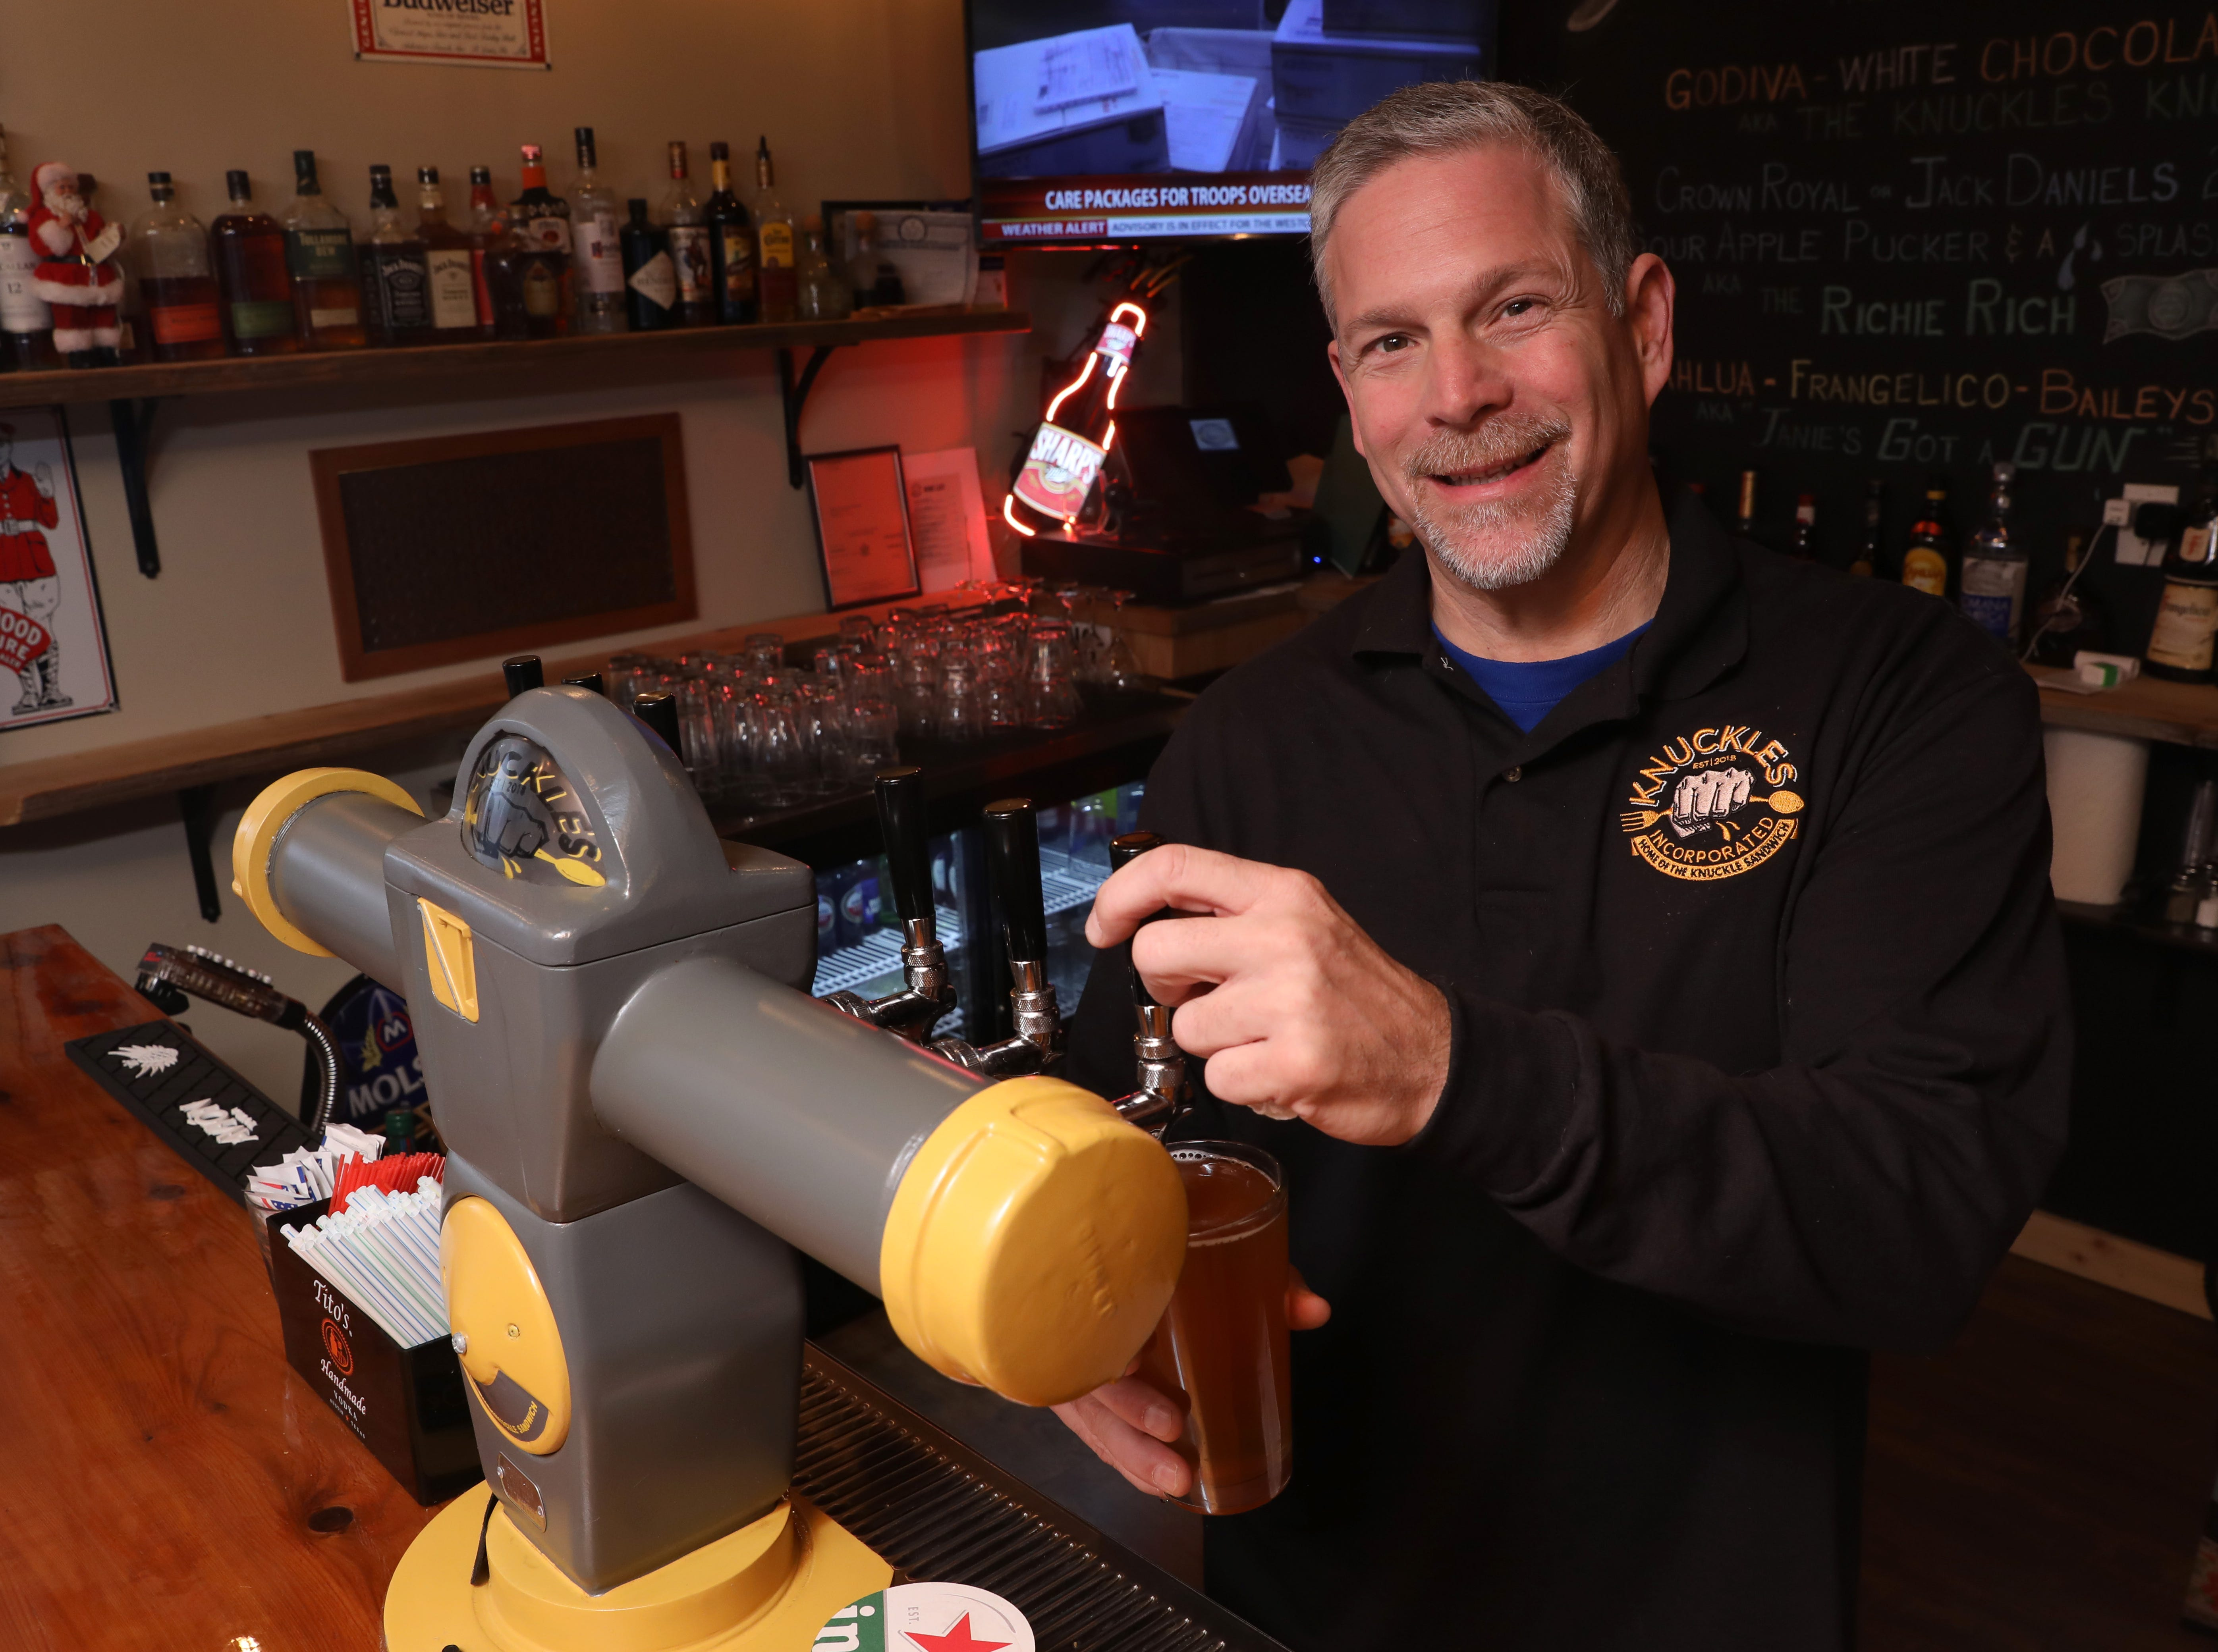 Owner Ken Stadt pours a Defiant Brewing Co. beer from the tap, which is a 1970s New York CityÊparking meter, at Knuckles Incorporated restaurant in Stony Point Nov. 26, 2018.